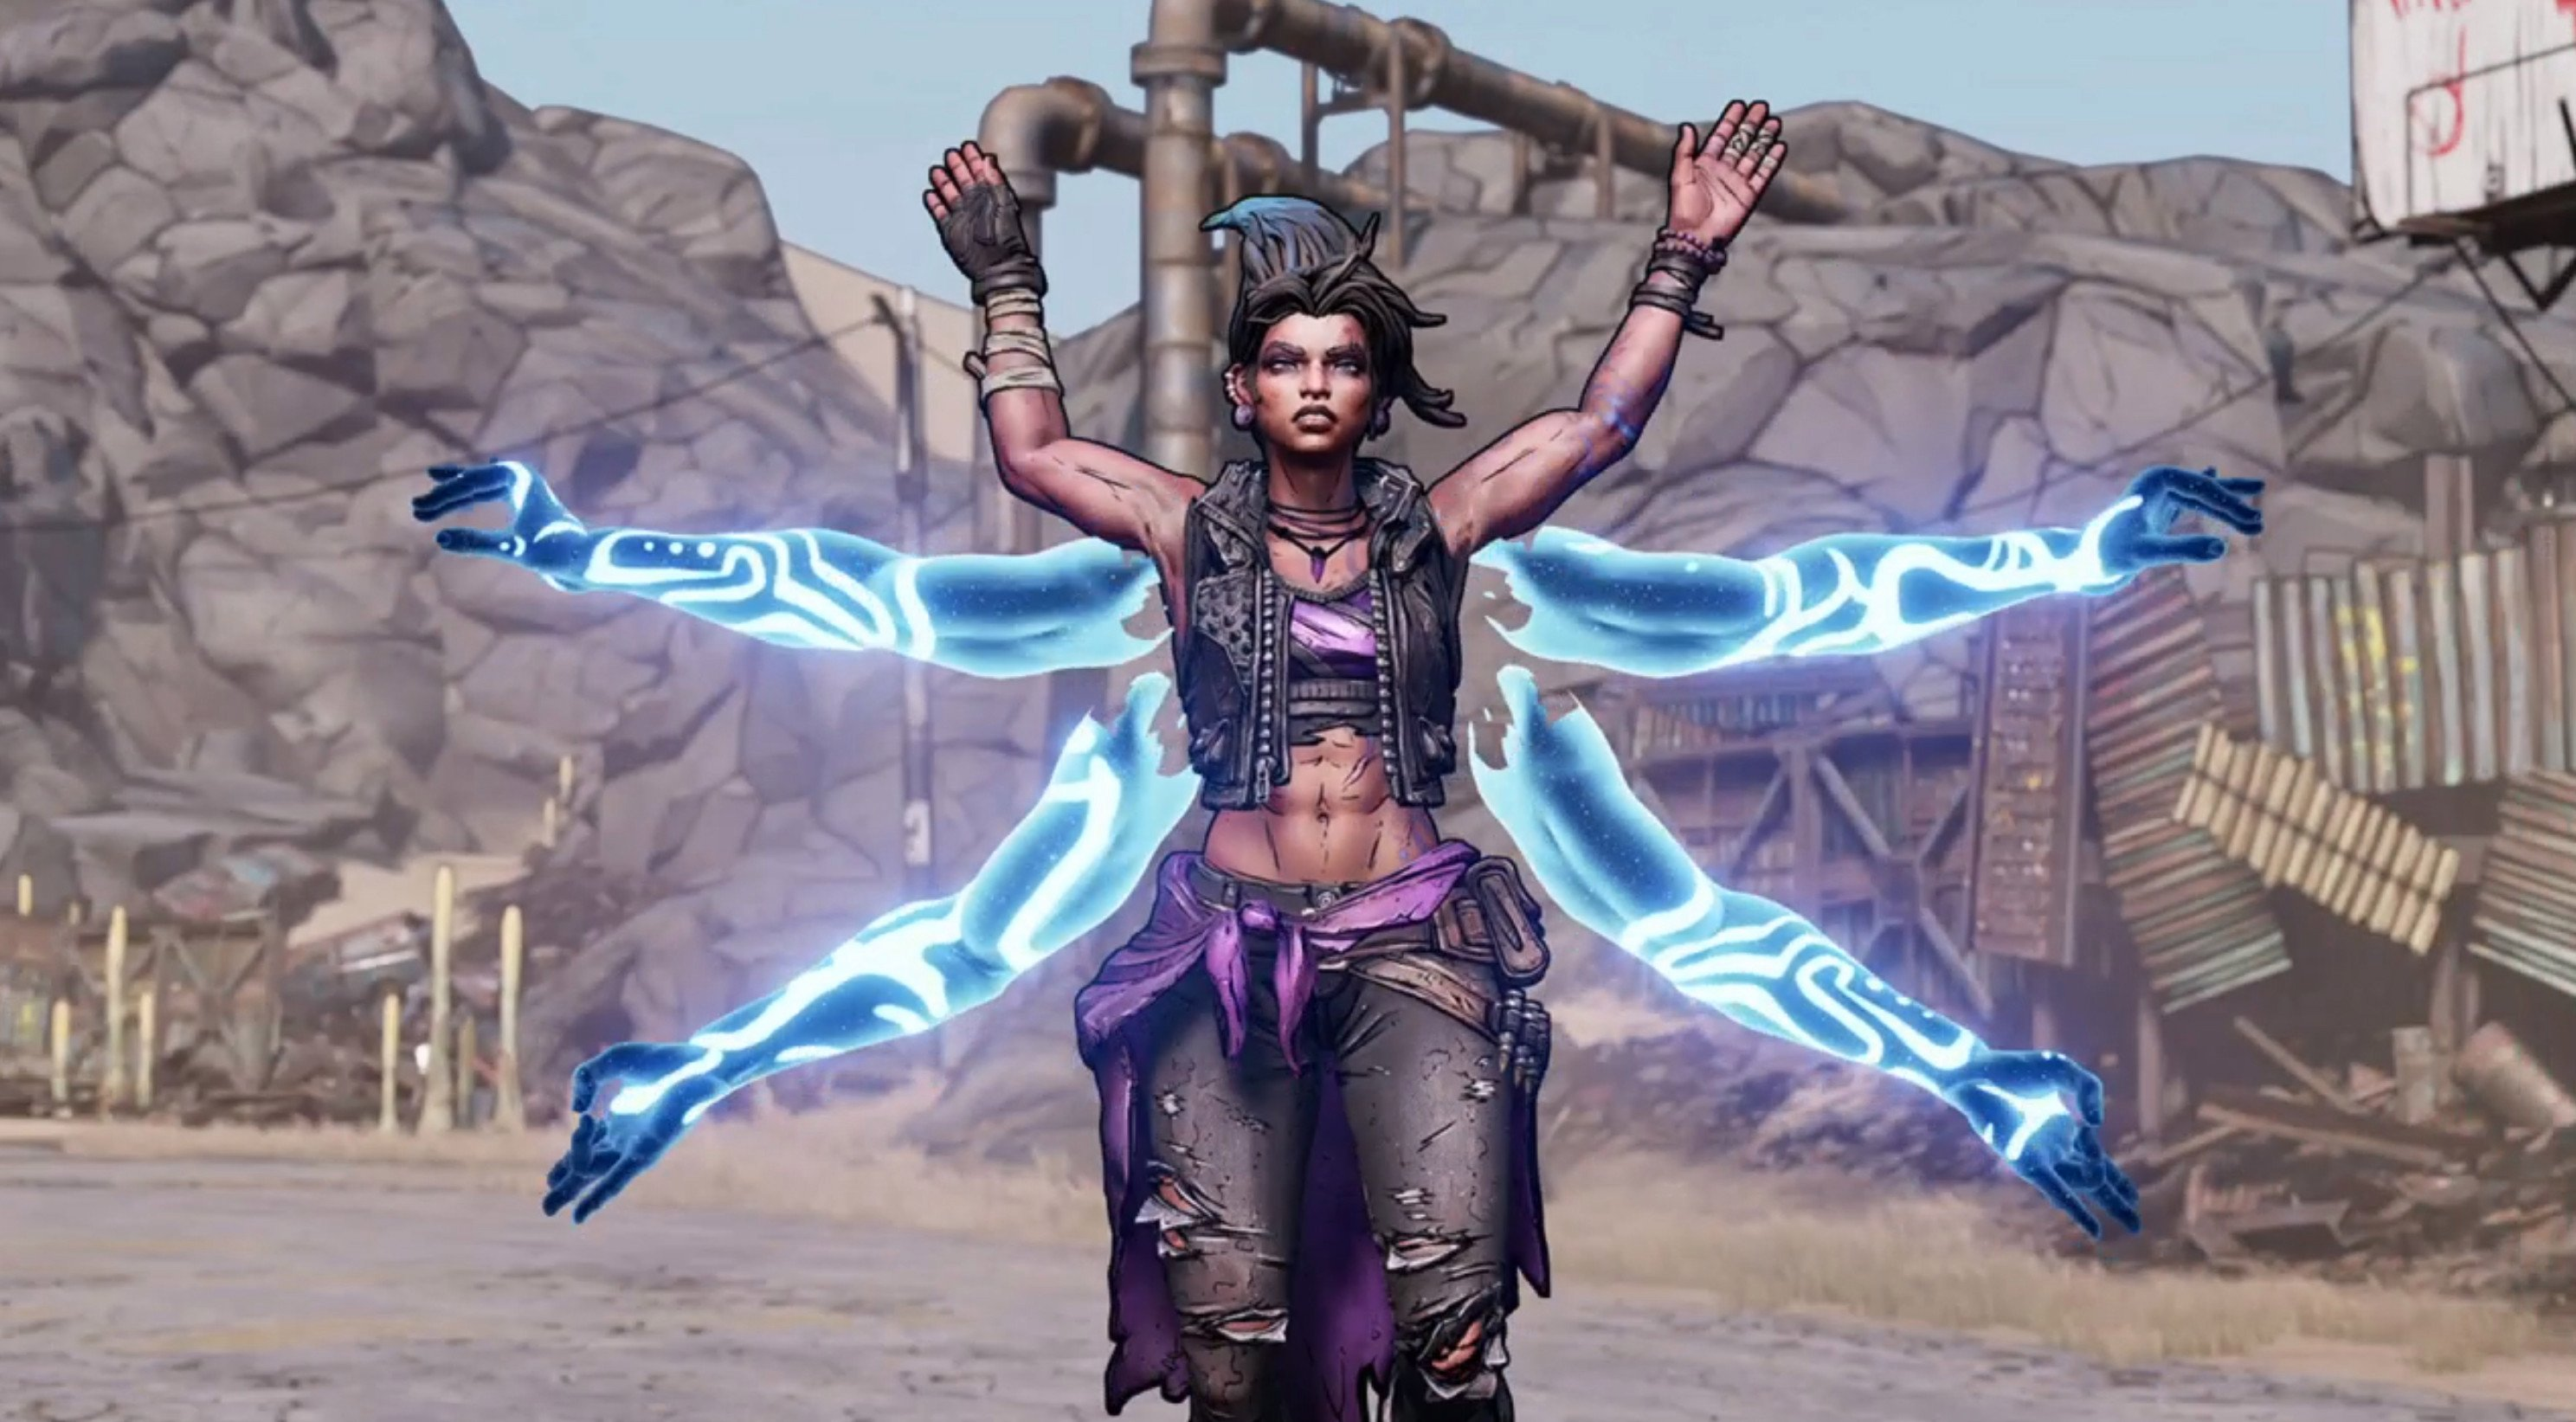 Borderlands 3 epic games store exclusive - new characters and more coming